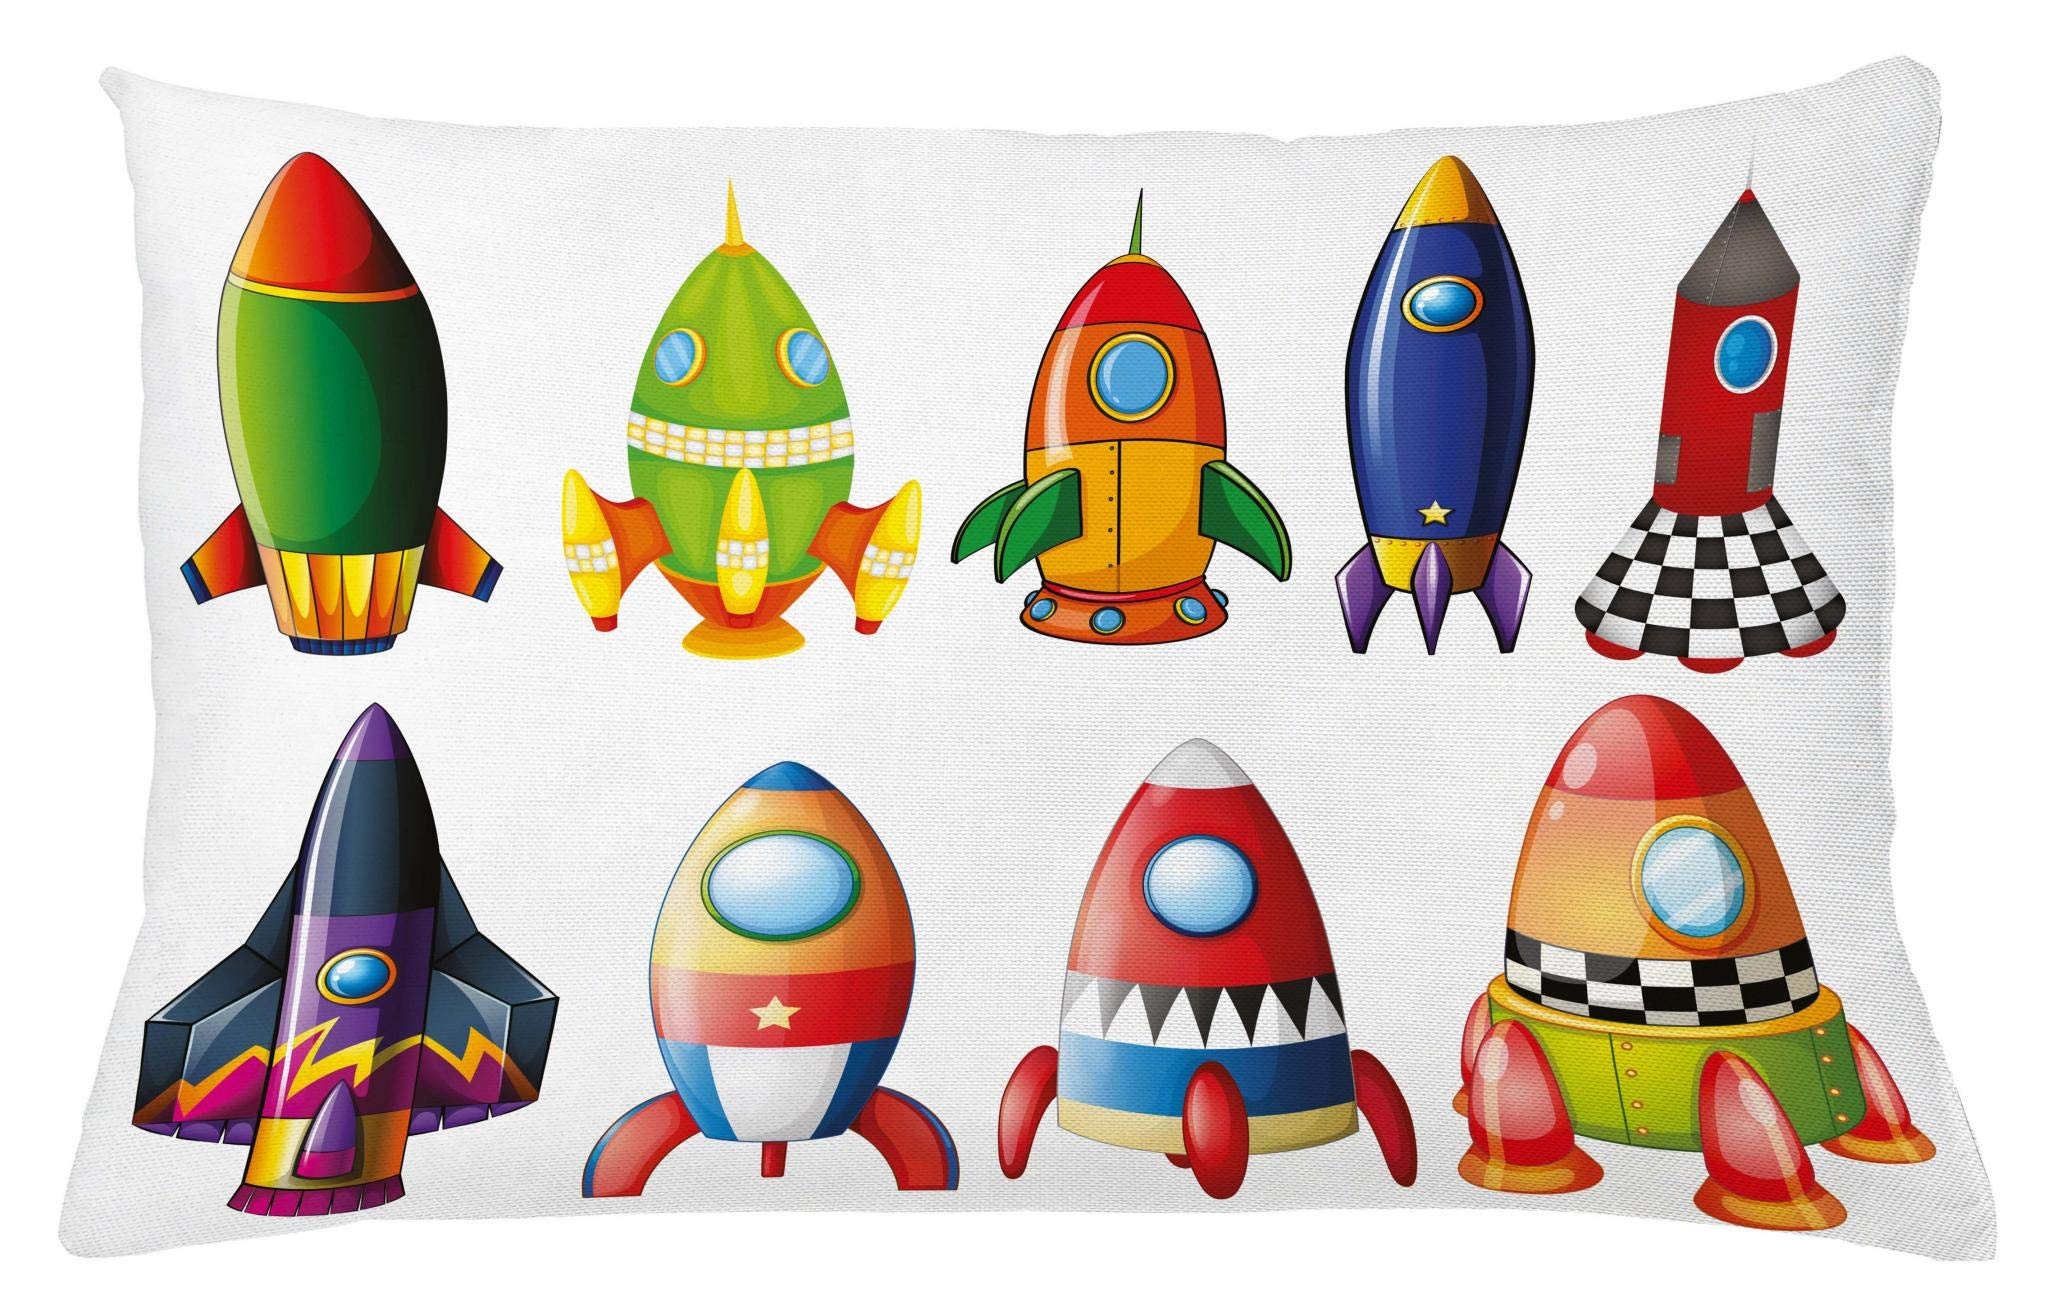 Lunarable Boy's Room Throw Pillow Cushion Cover, Colorful Space Crafts with Variety of Shapes and Sizes Rockets Space Culture, Decorative Accent Pillow Case, 26 W X 16 L Inches, Multicolor